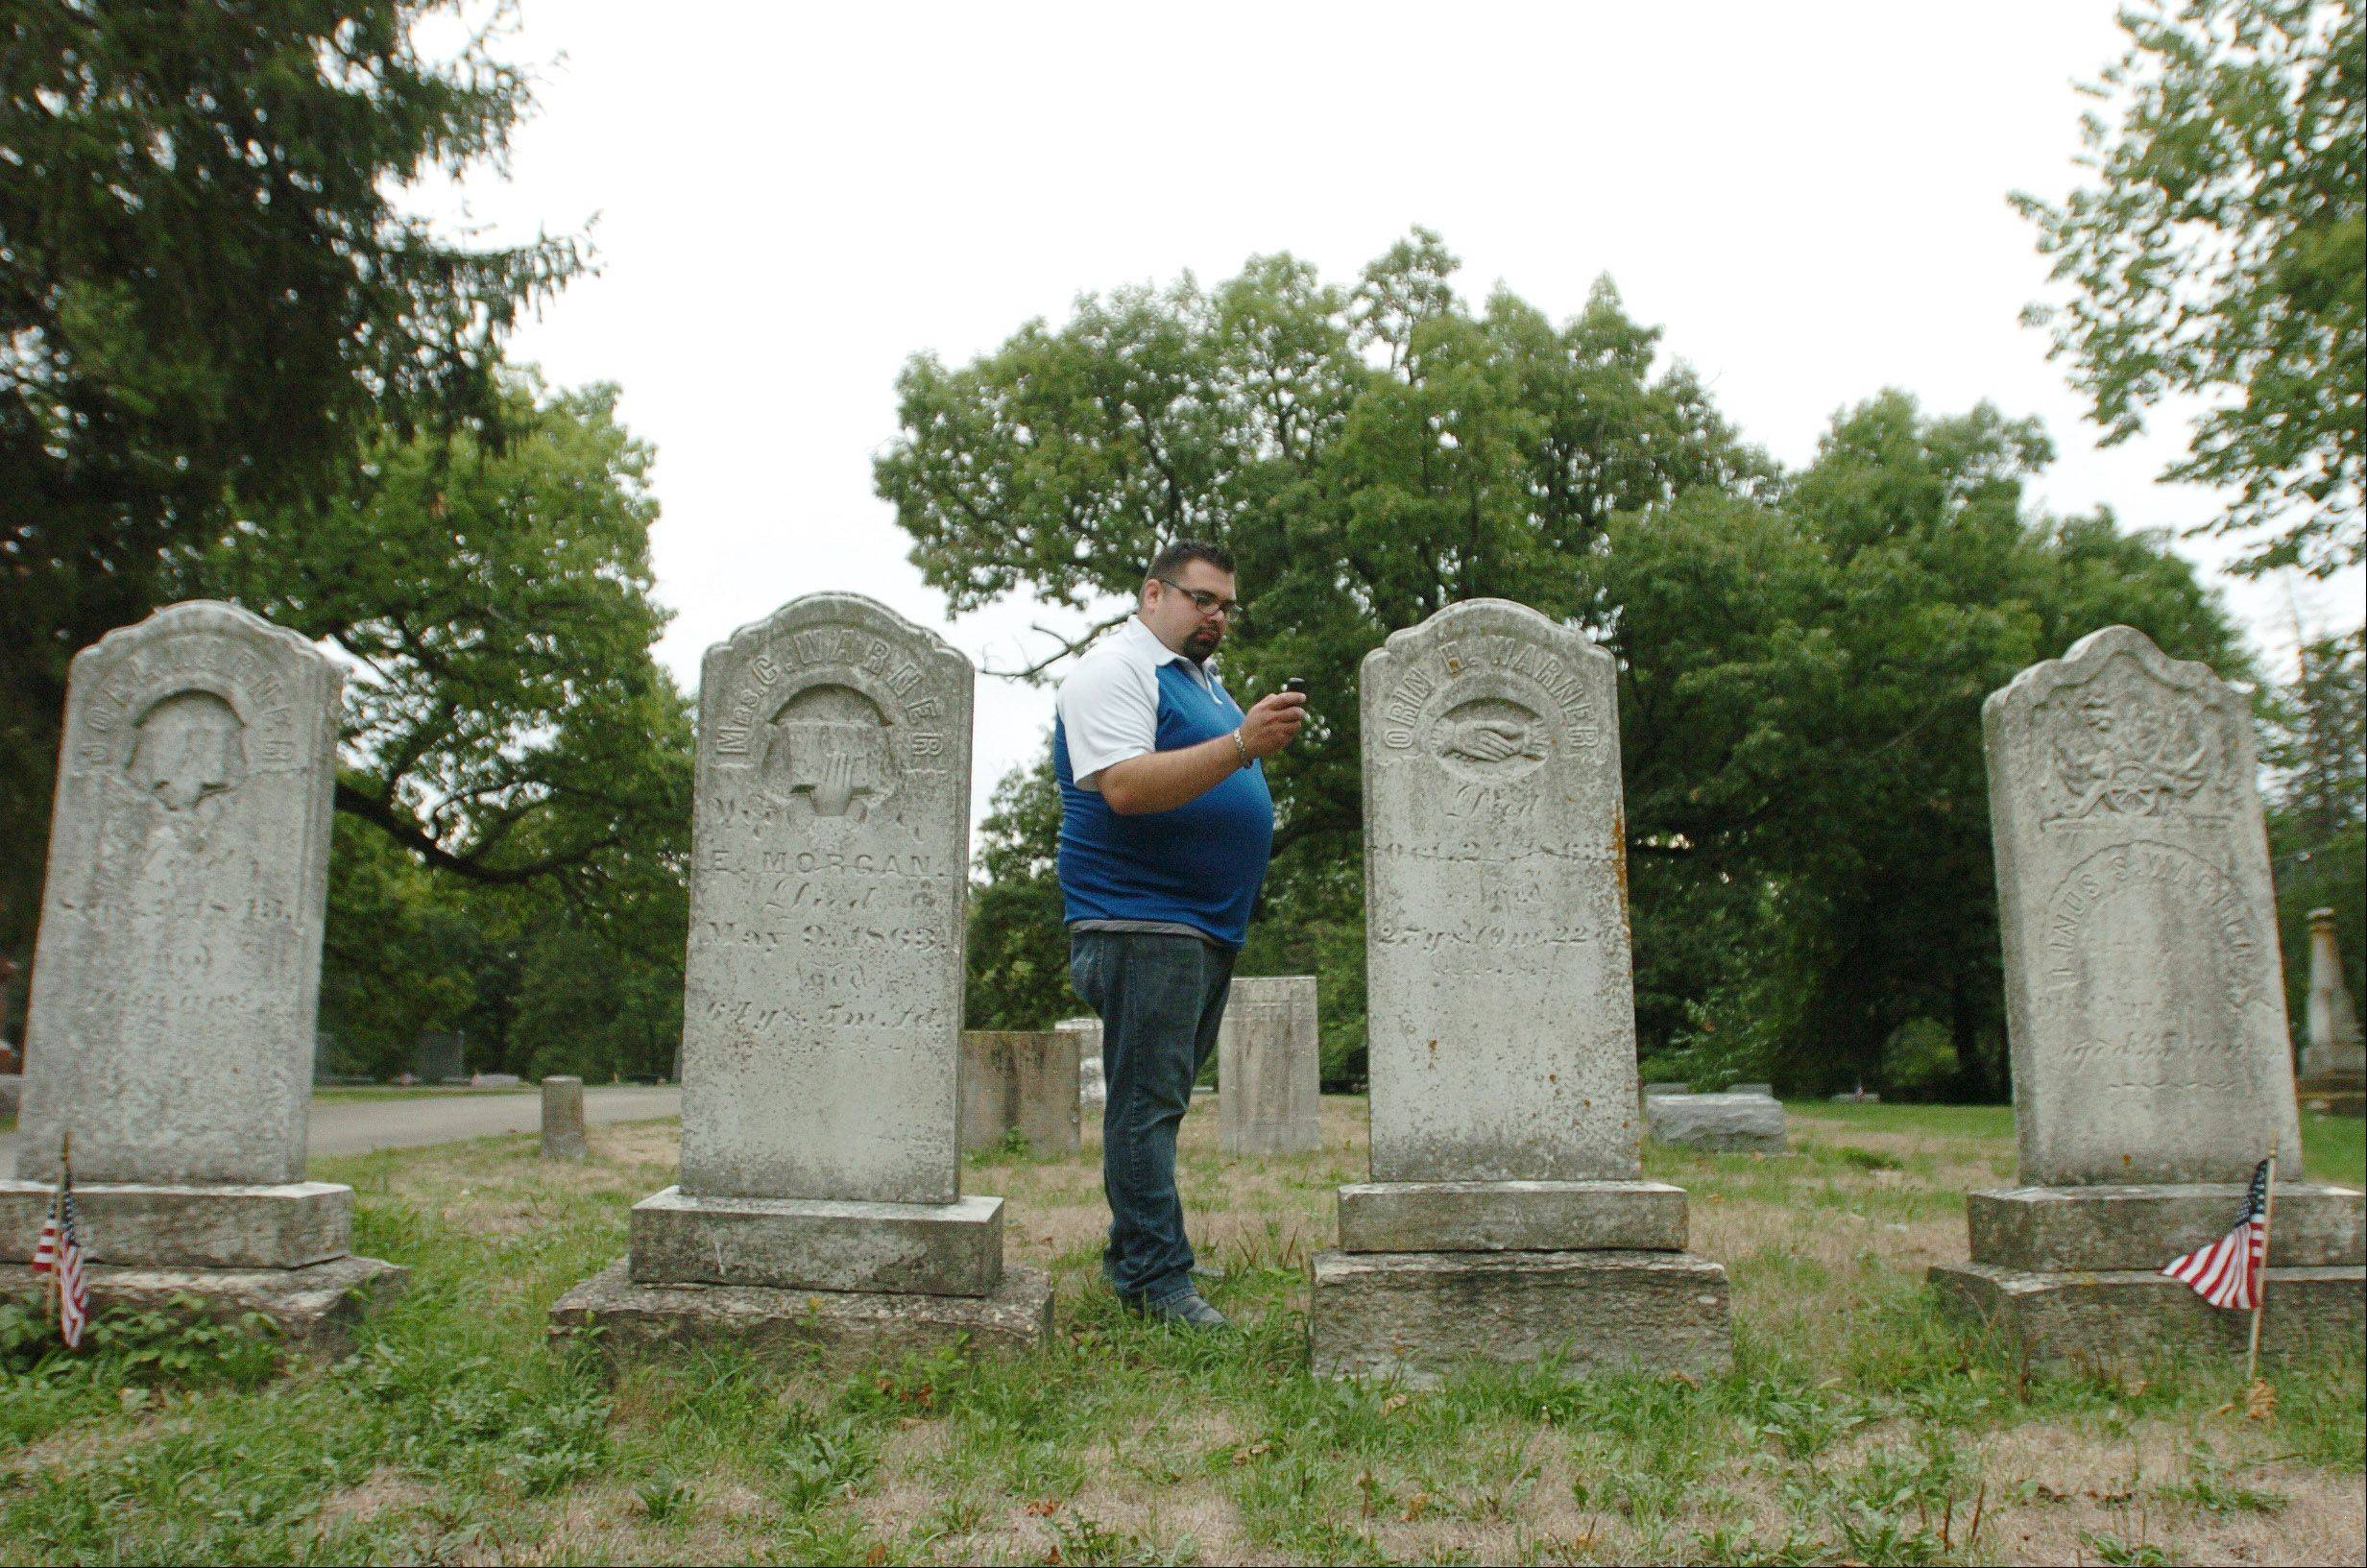 Herran listens for evidence of a spiritual presence in an Oswego cemetery. He also investigates homes.